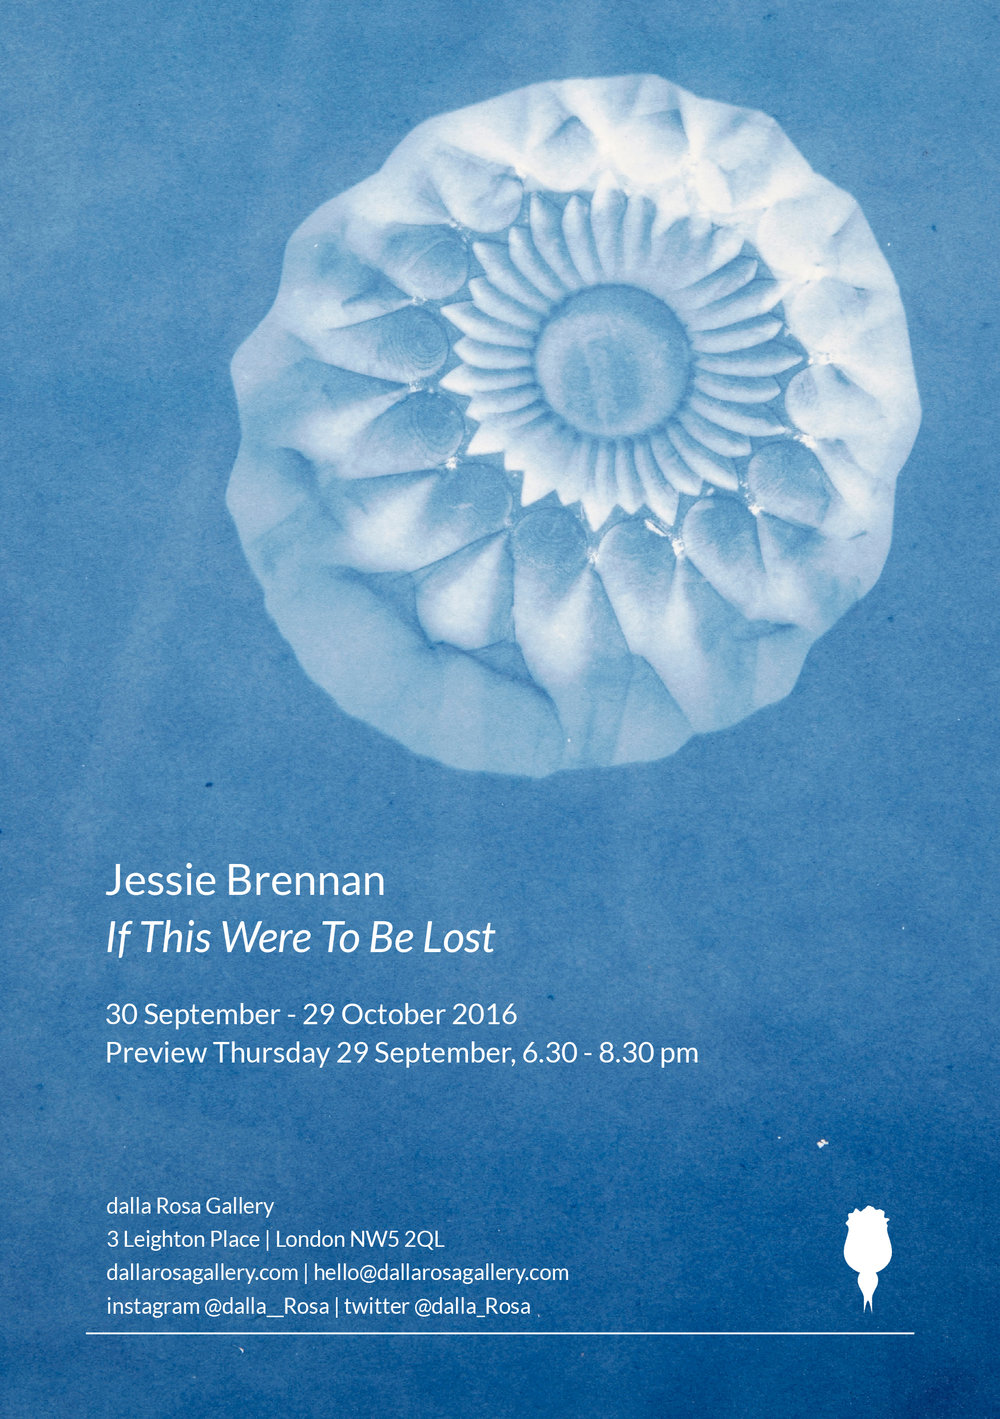 dalla_Rosa_J_Brennan_If_This_Were_to_be_Lost_2016_invite_PRINT_final.jpeg